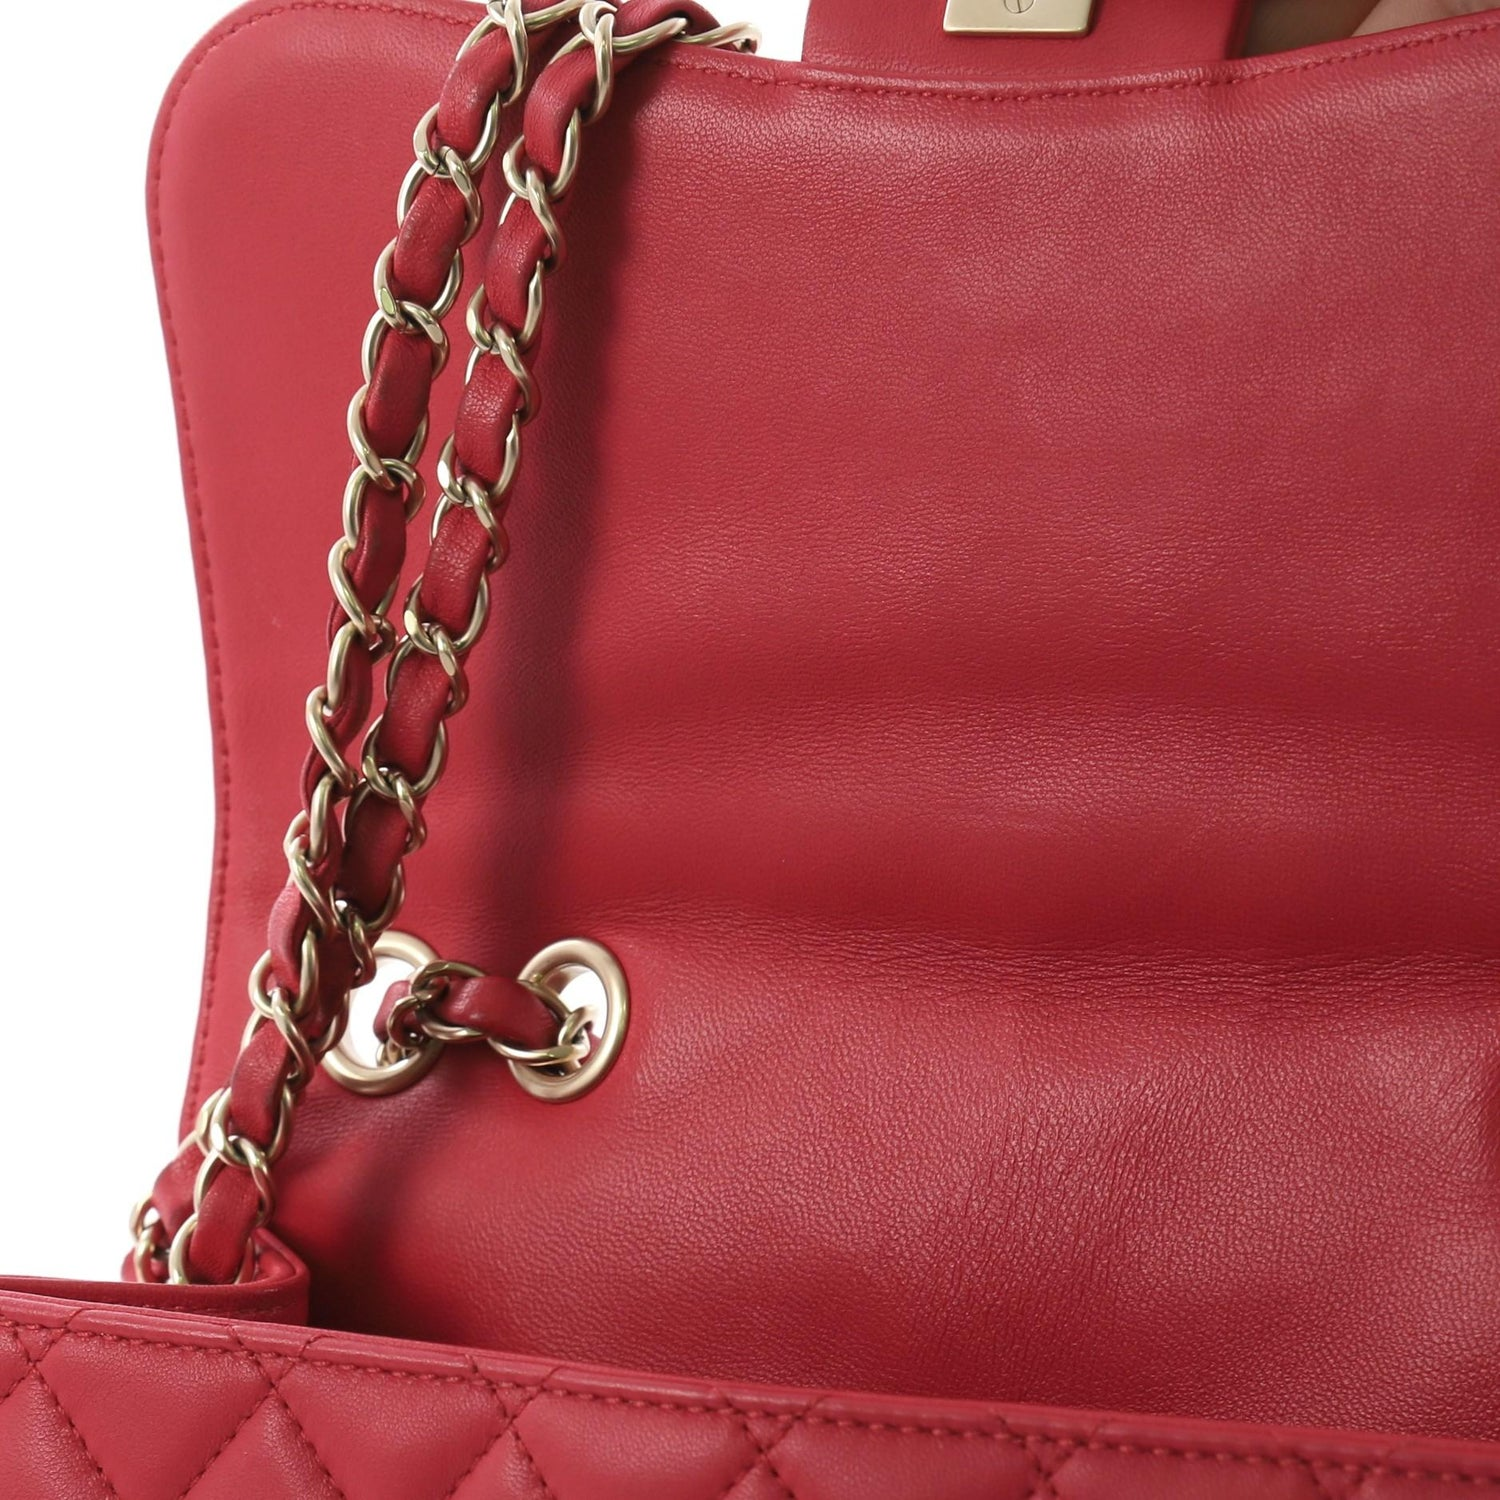 23e117c39c9e29 Chanel Mademoiselle Chic Flap Bag Quilted Lambskin Medium For Sale at  1stdibs